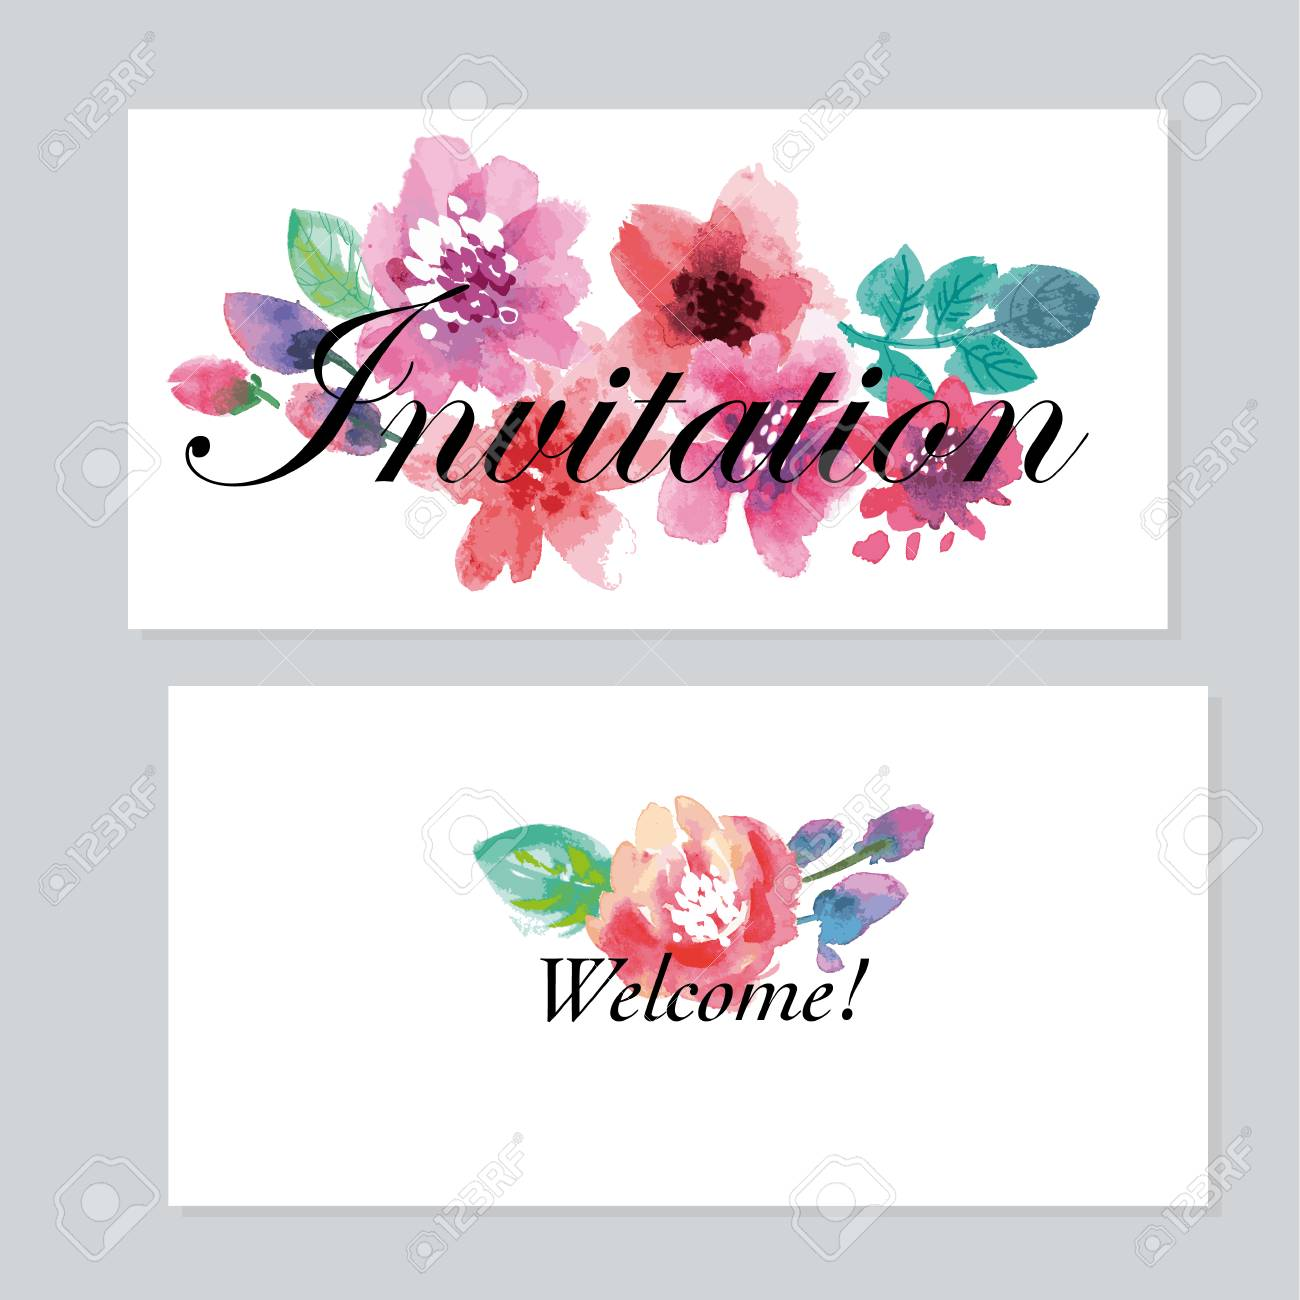 a watercolor floral invitation template for wedding hand drawn